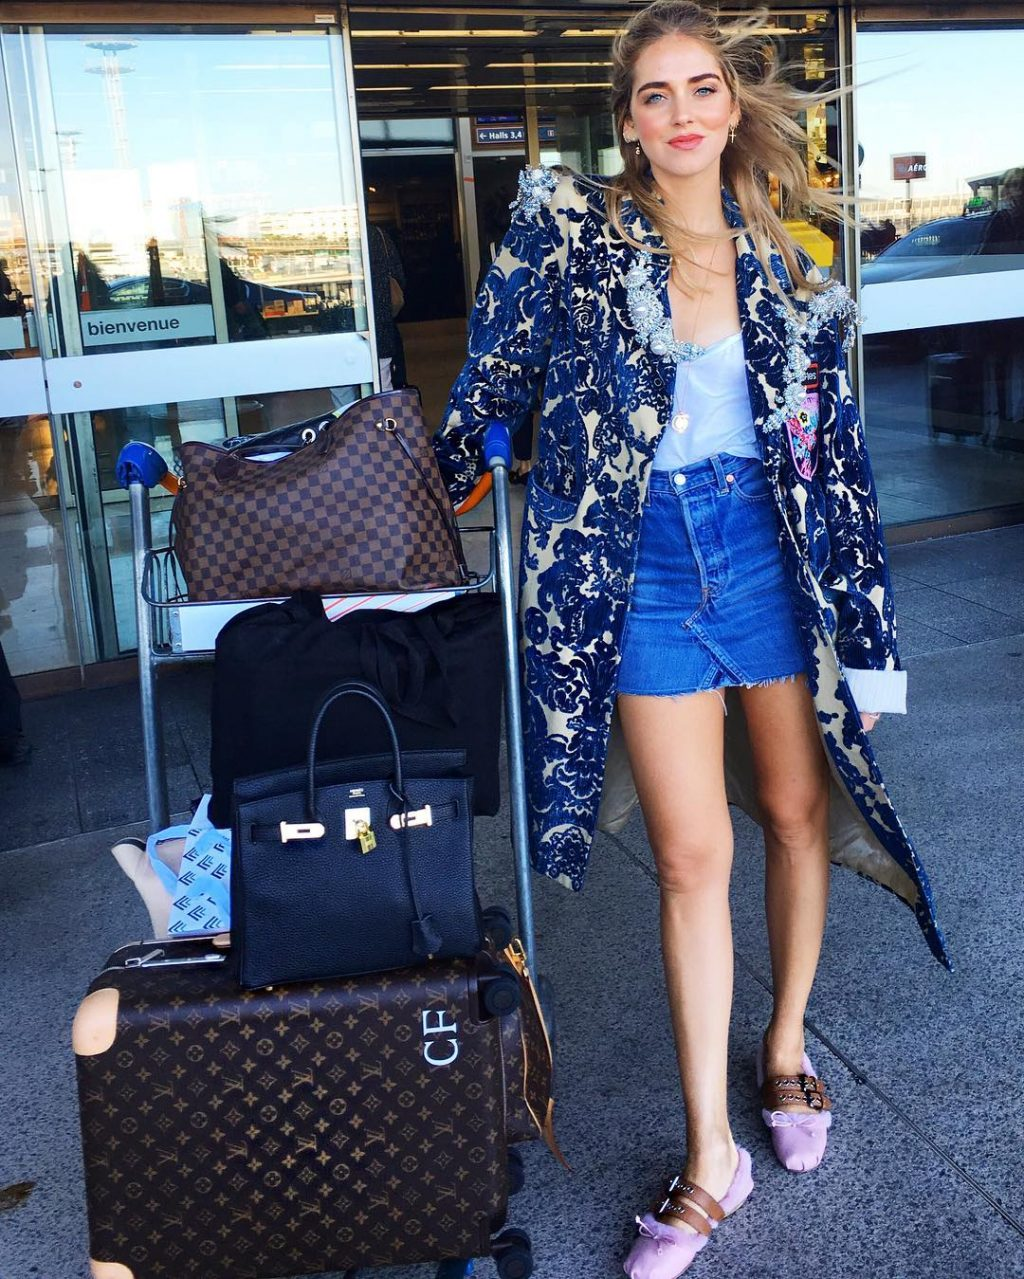 5 Outfit Ideas to Breeze Through Airport Security in Style